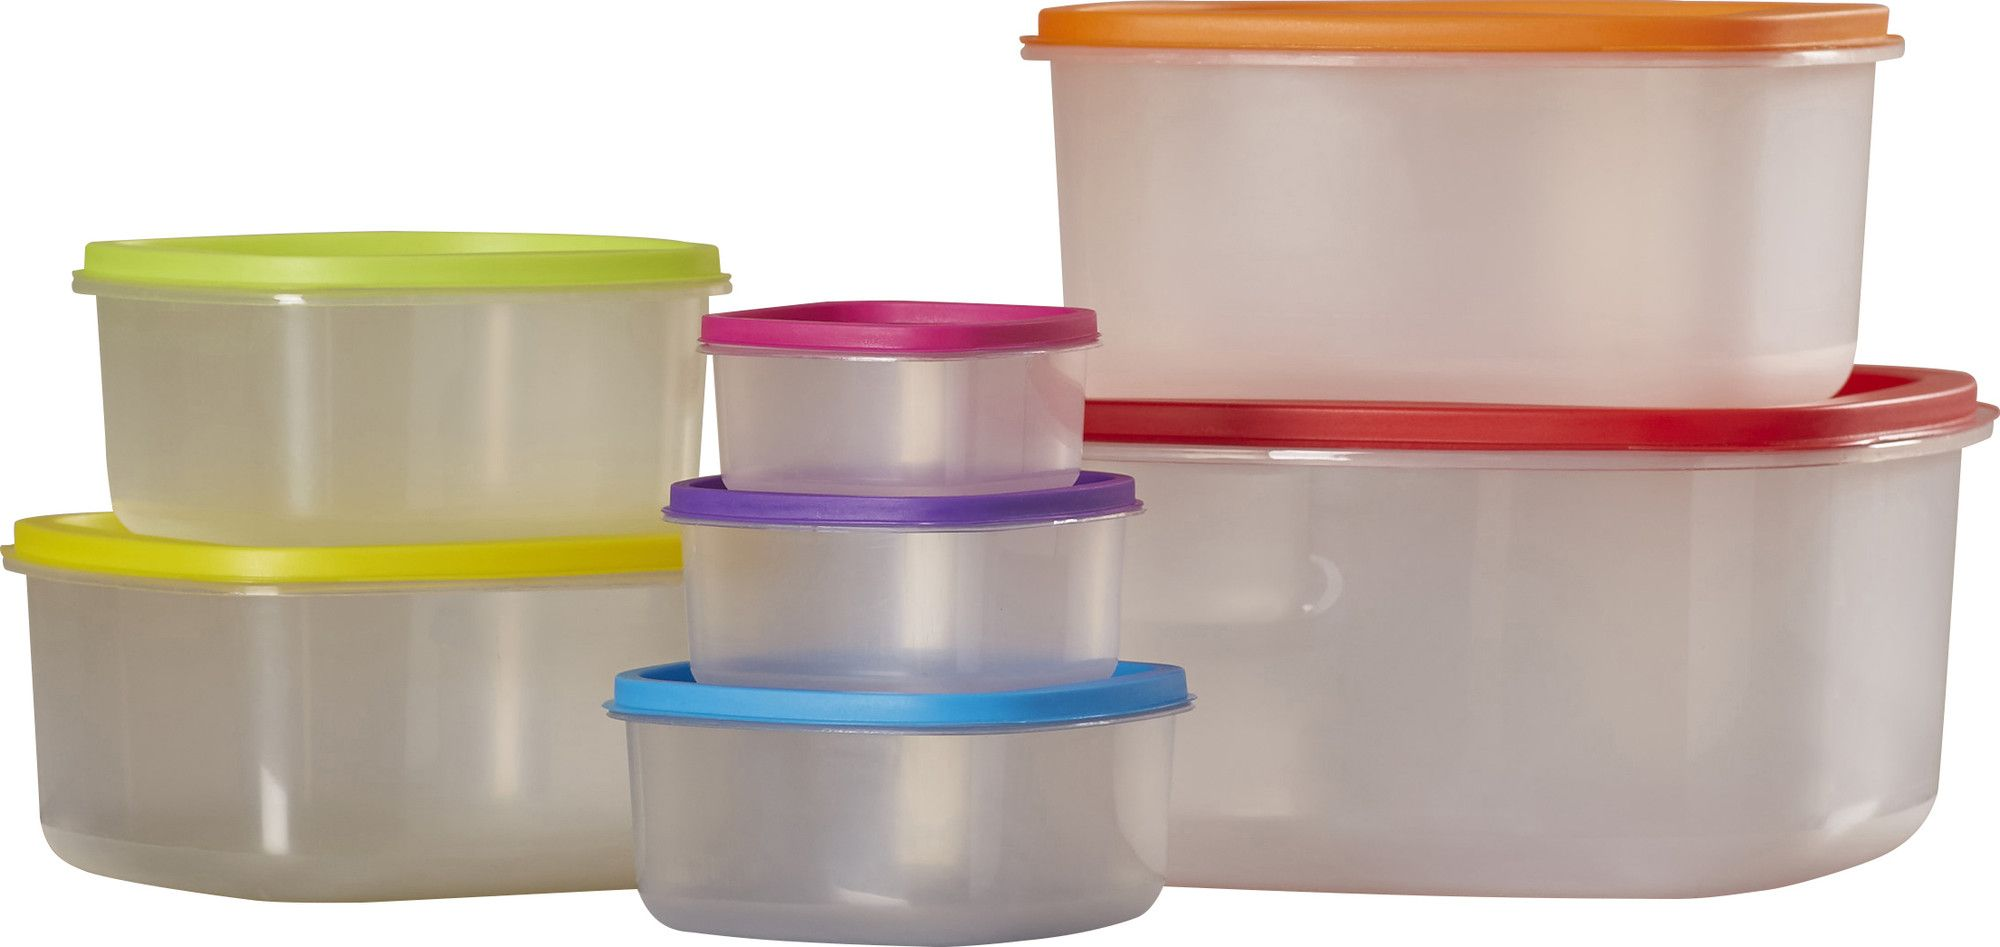 Wayfair Basics 14-Piece Plastic Food Storage Set